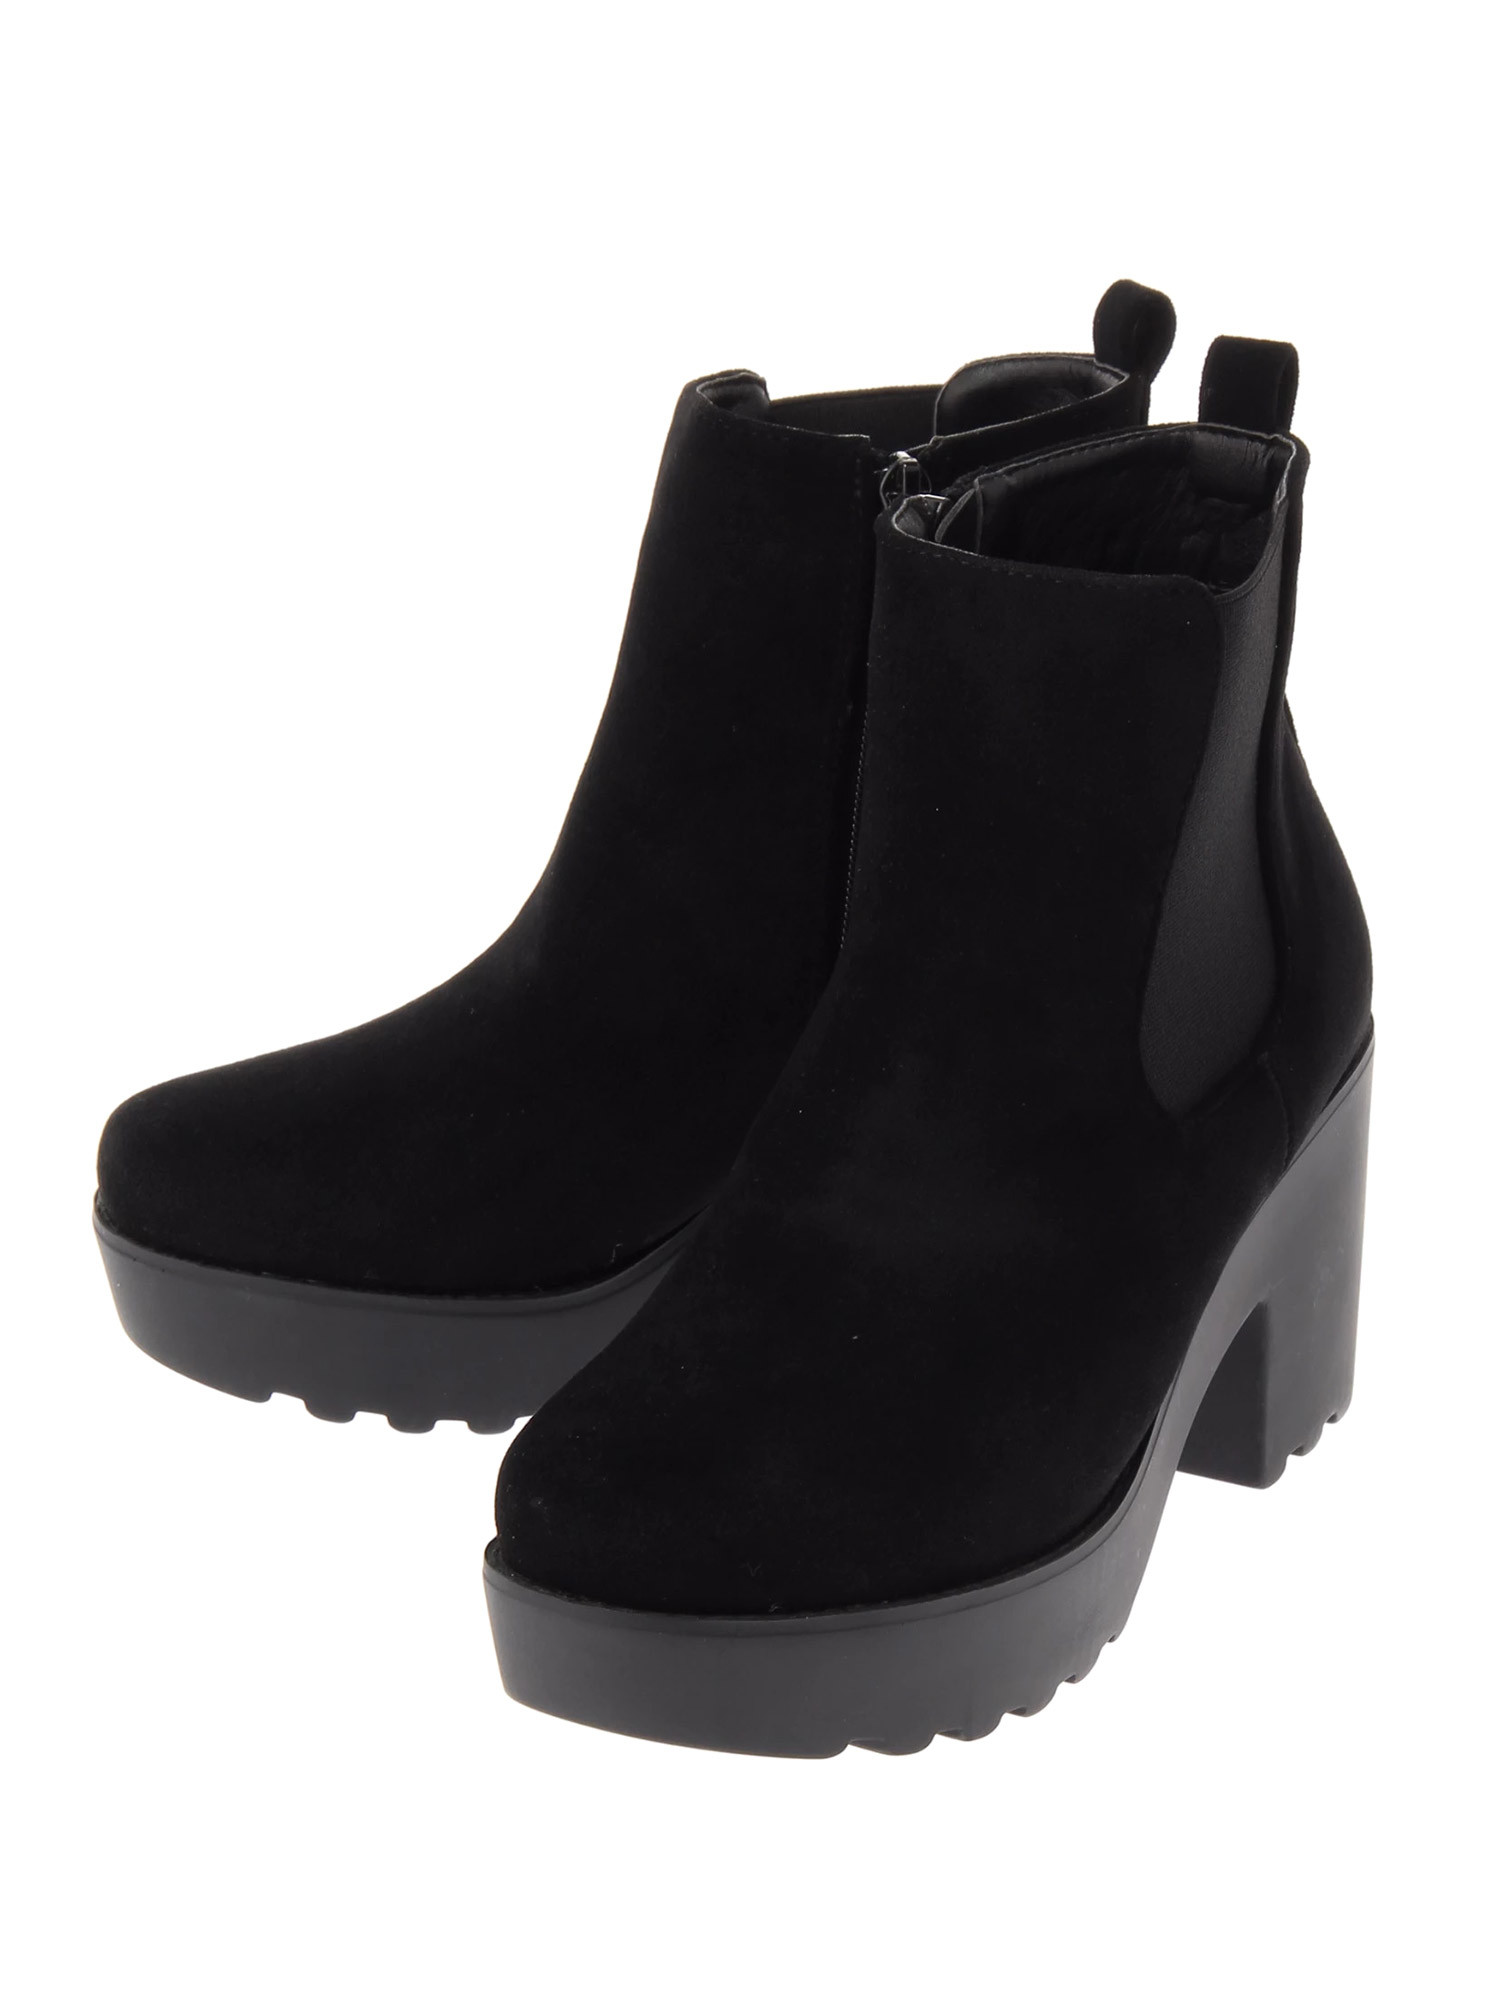 SUEDE SIDE GOA BOOTS